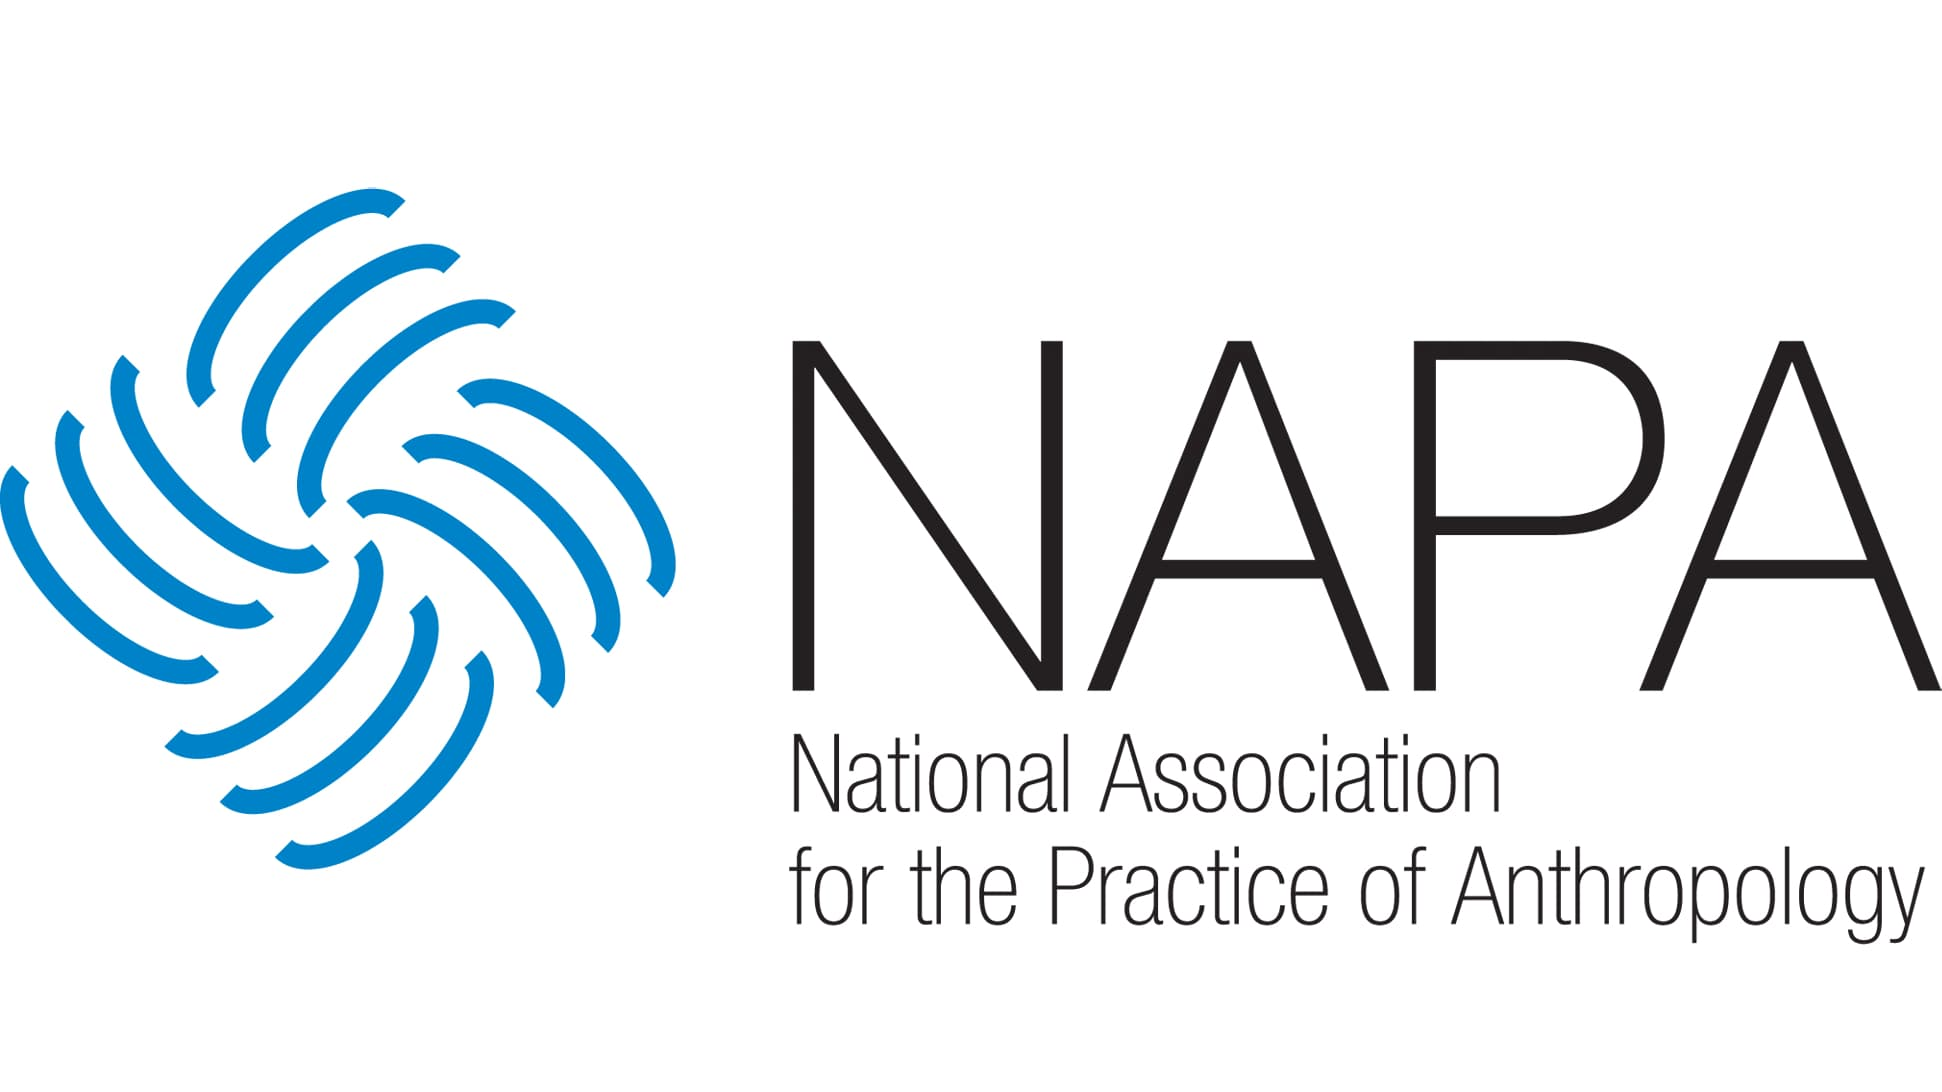 The National Association For The Practice of Anthropology (NAPA)